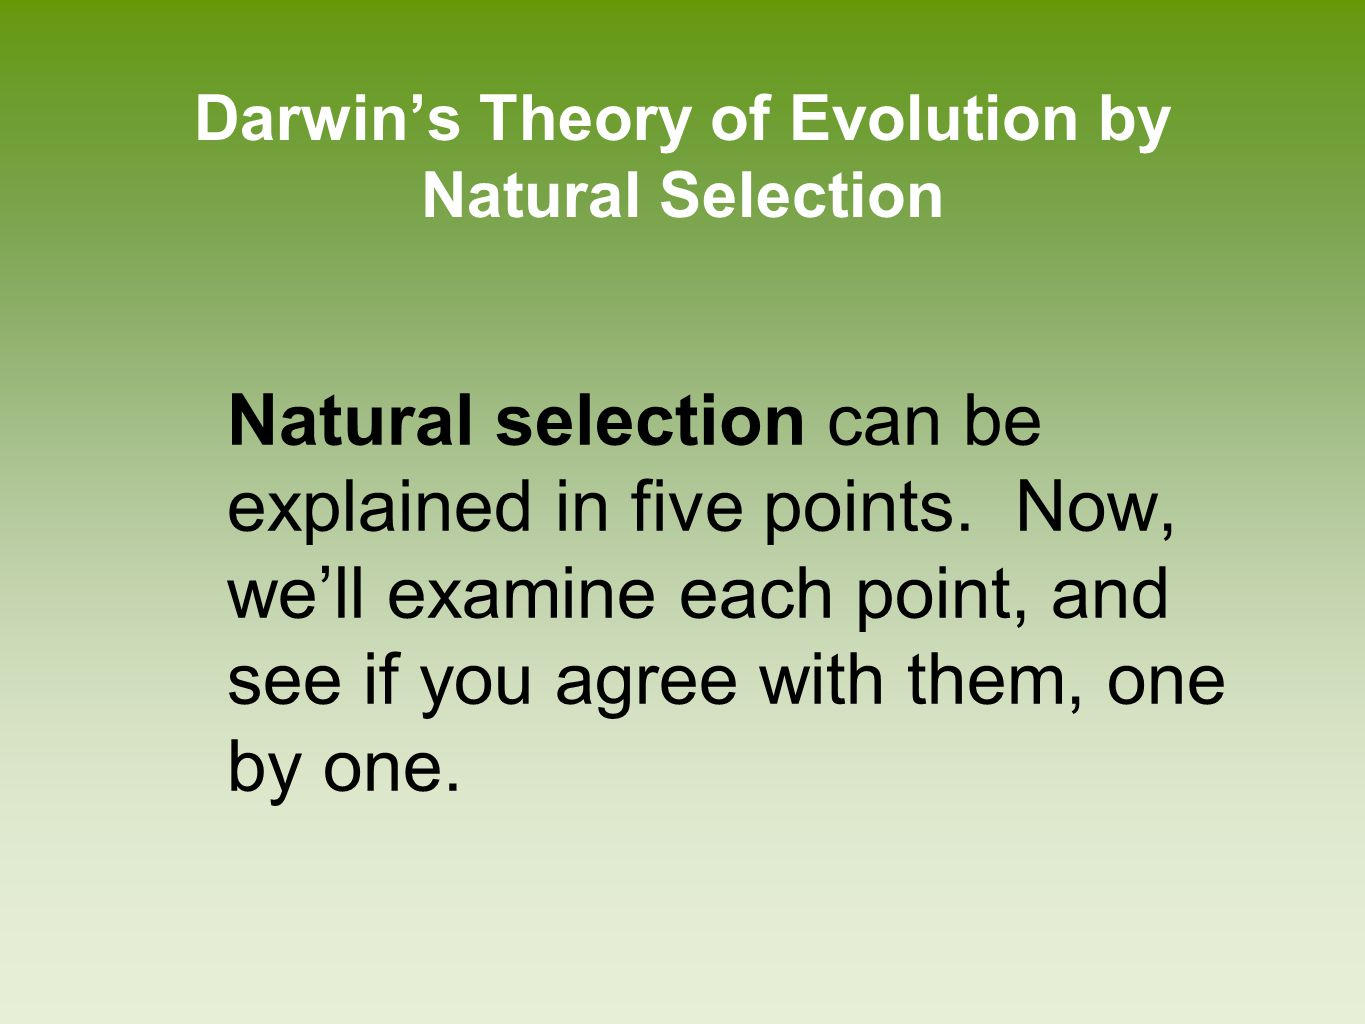 Darwin's Theory of Evolution by Natural Selection: Point #1 1. Individuals vary.